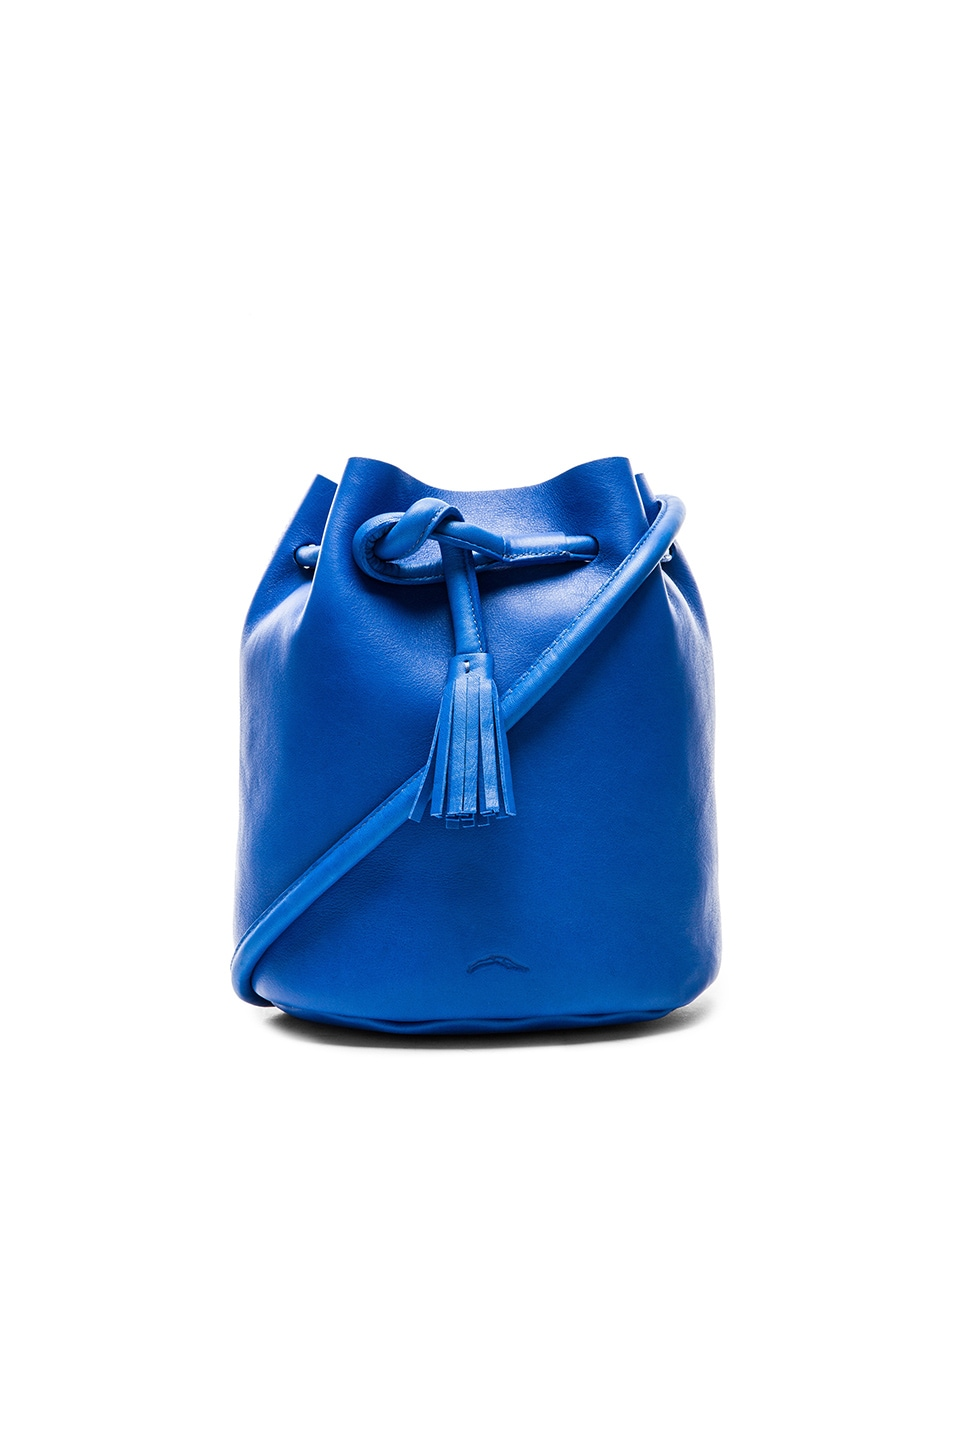 Shaffer The Dana Bucket Bag in Cobalt